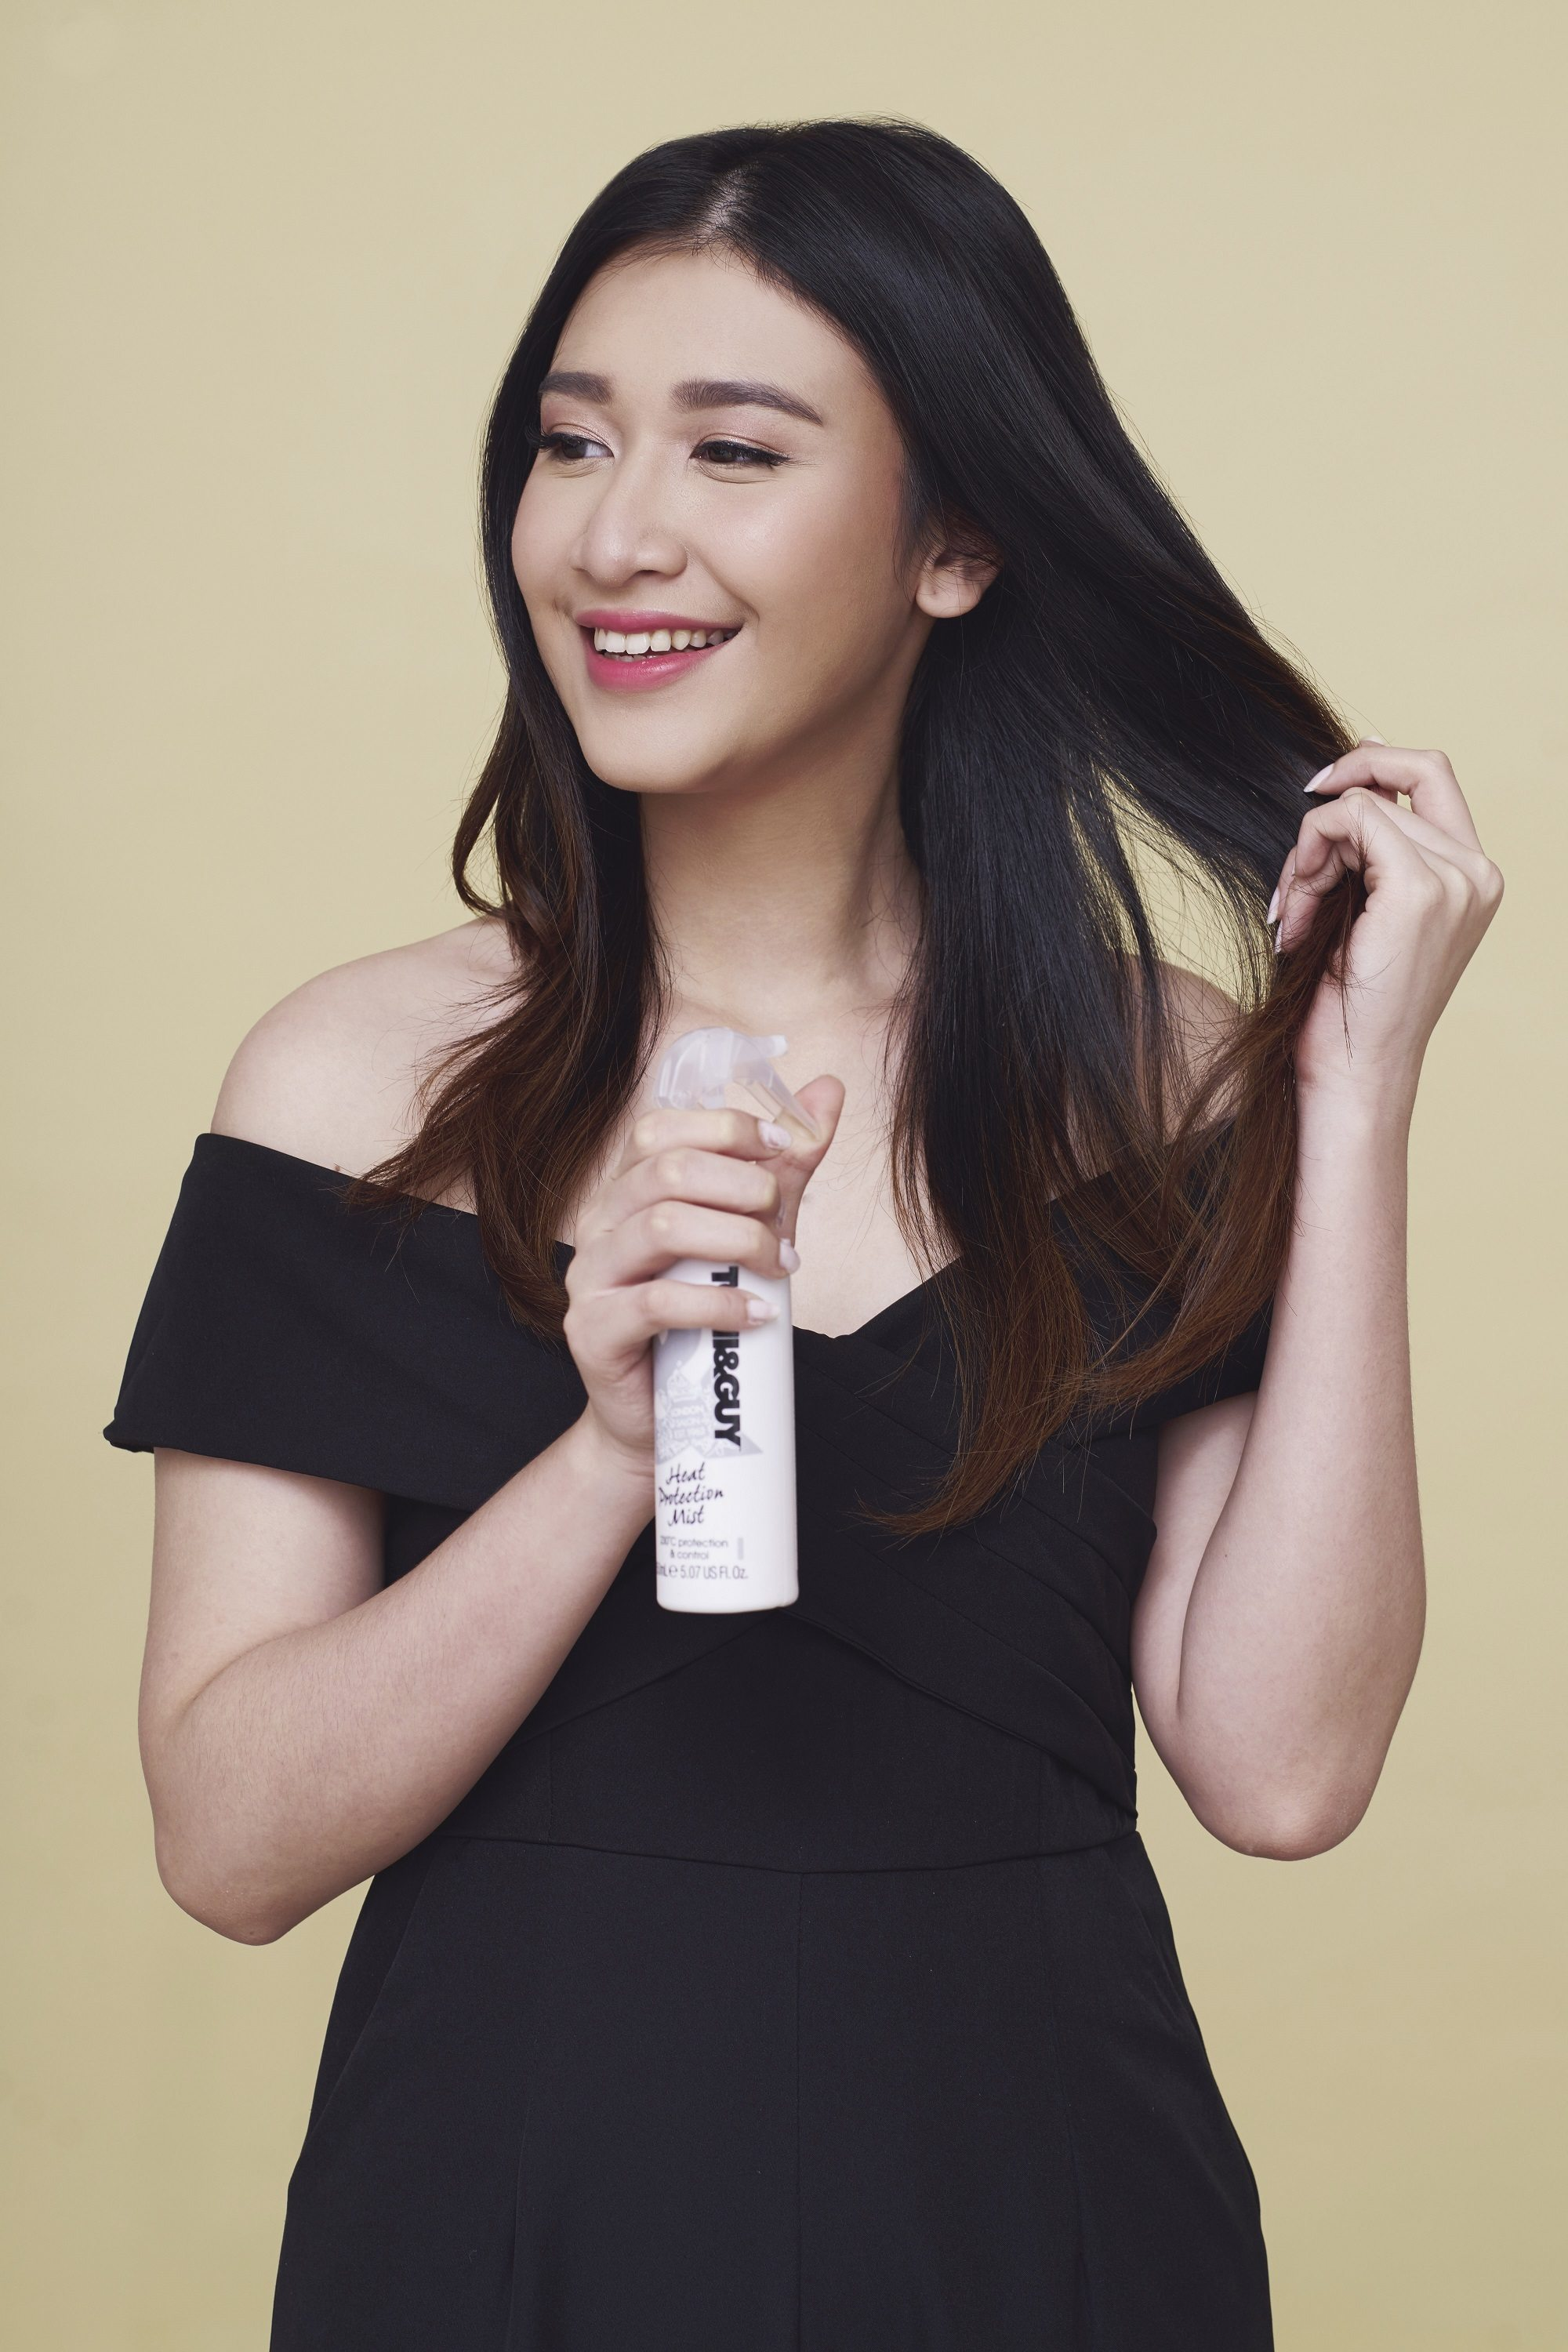 Blow dry your hair: Asian woman spraying heat protectant on her long dark hair